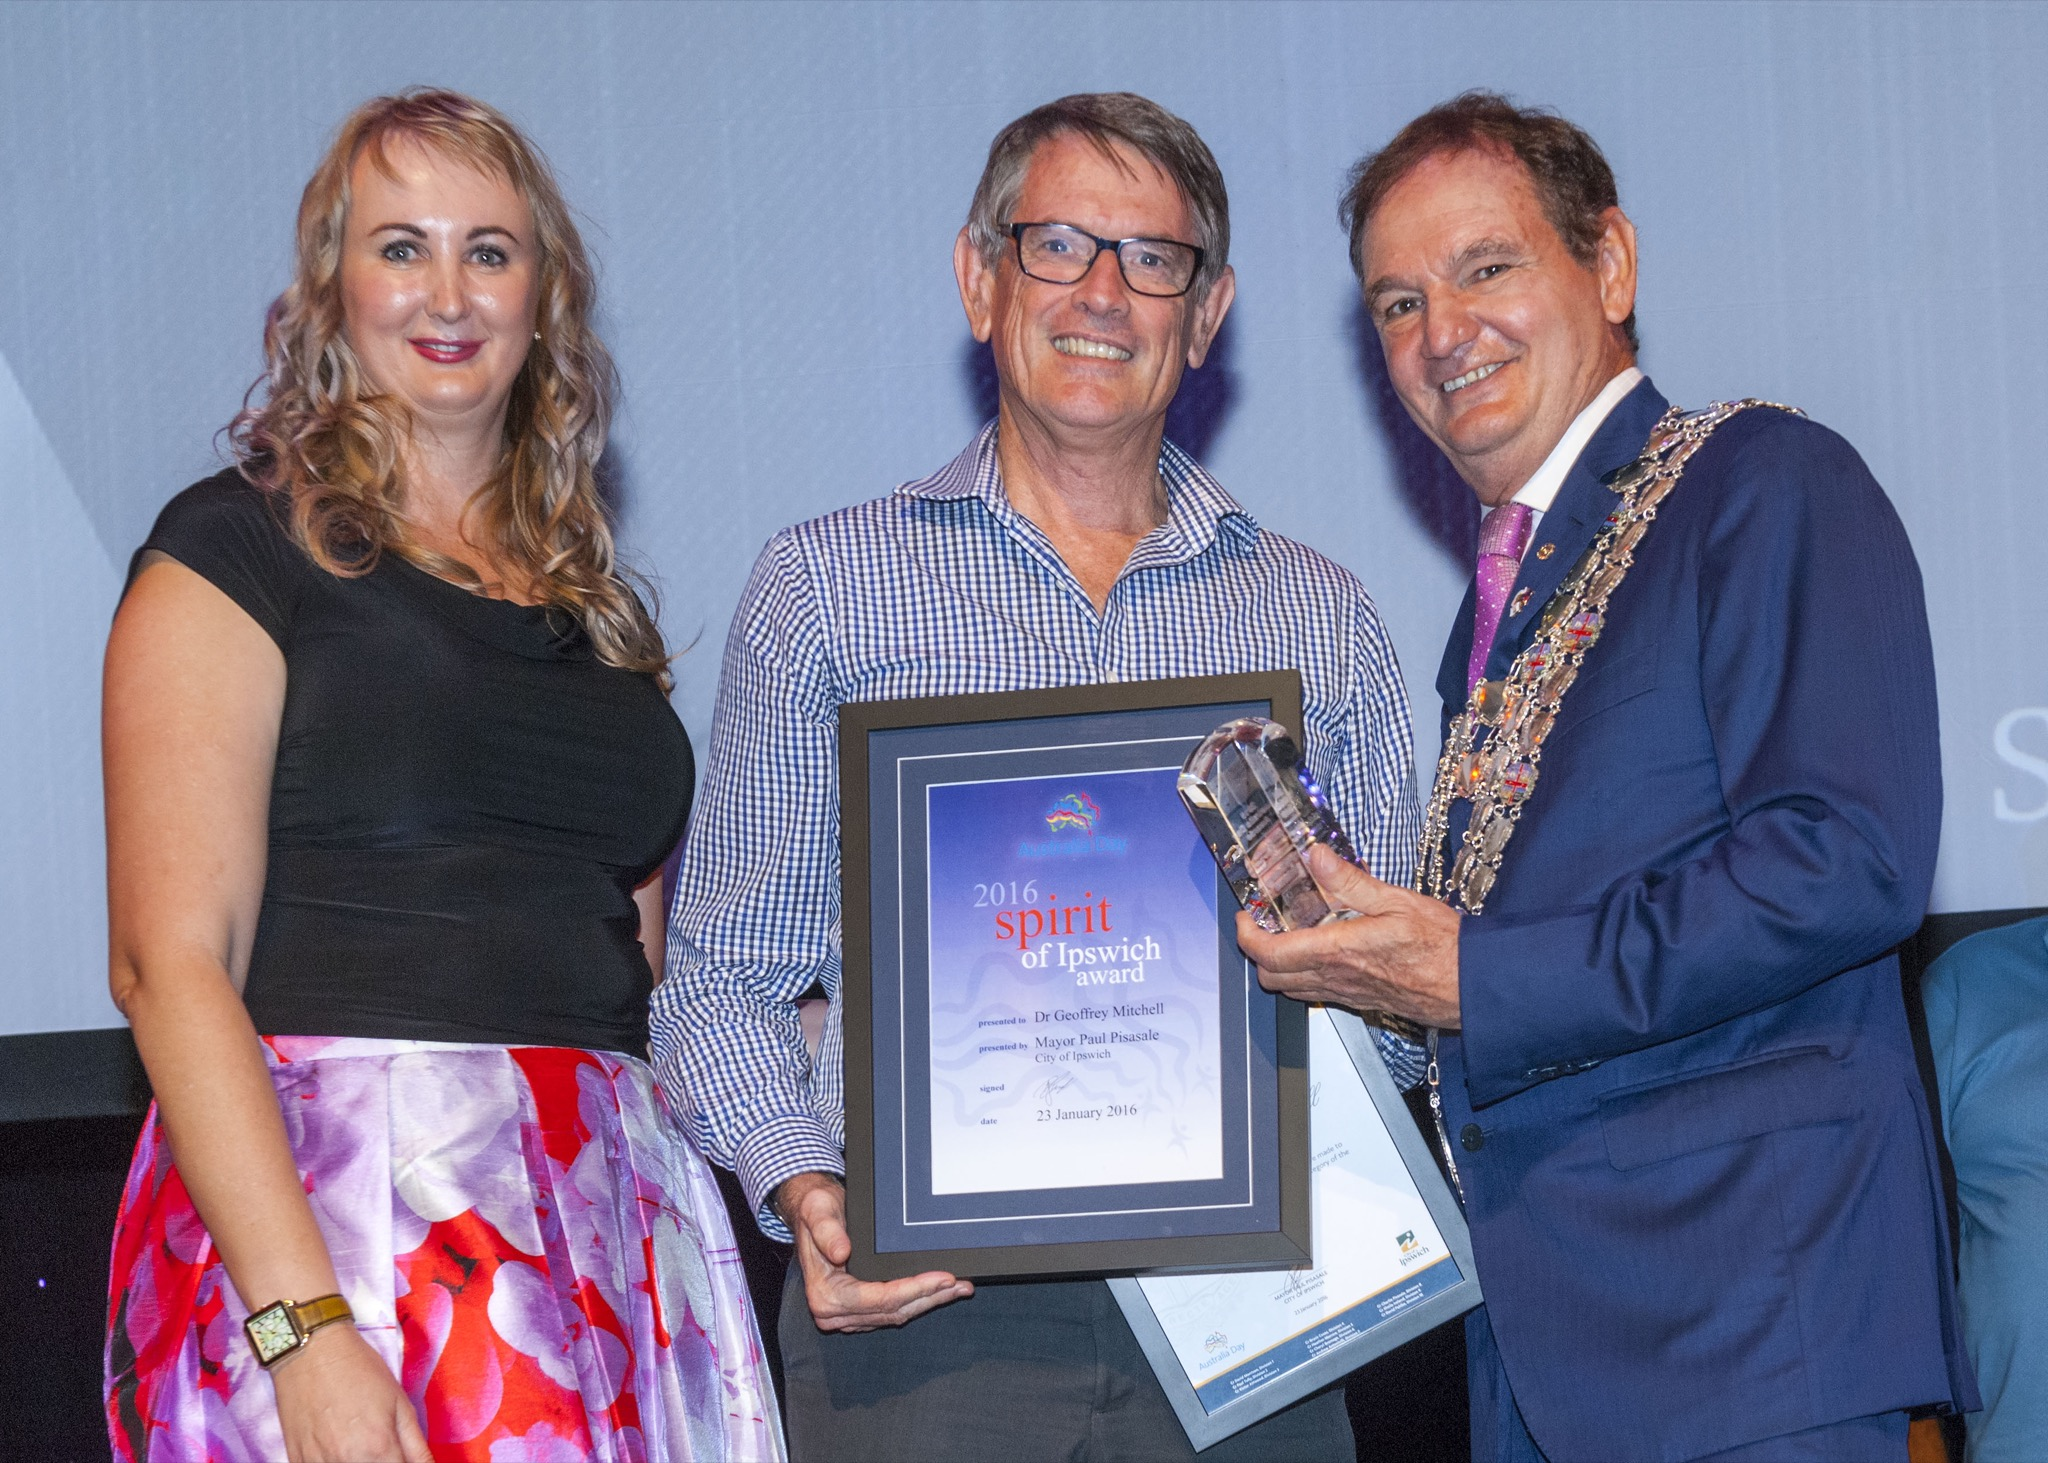 Spirit of Ipswich Award of the Year